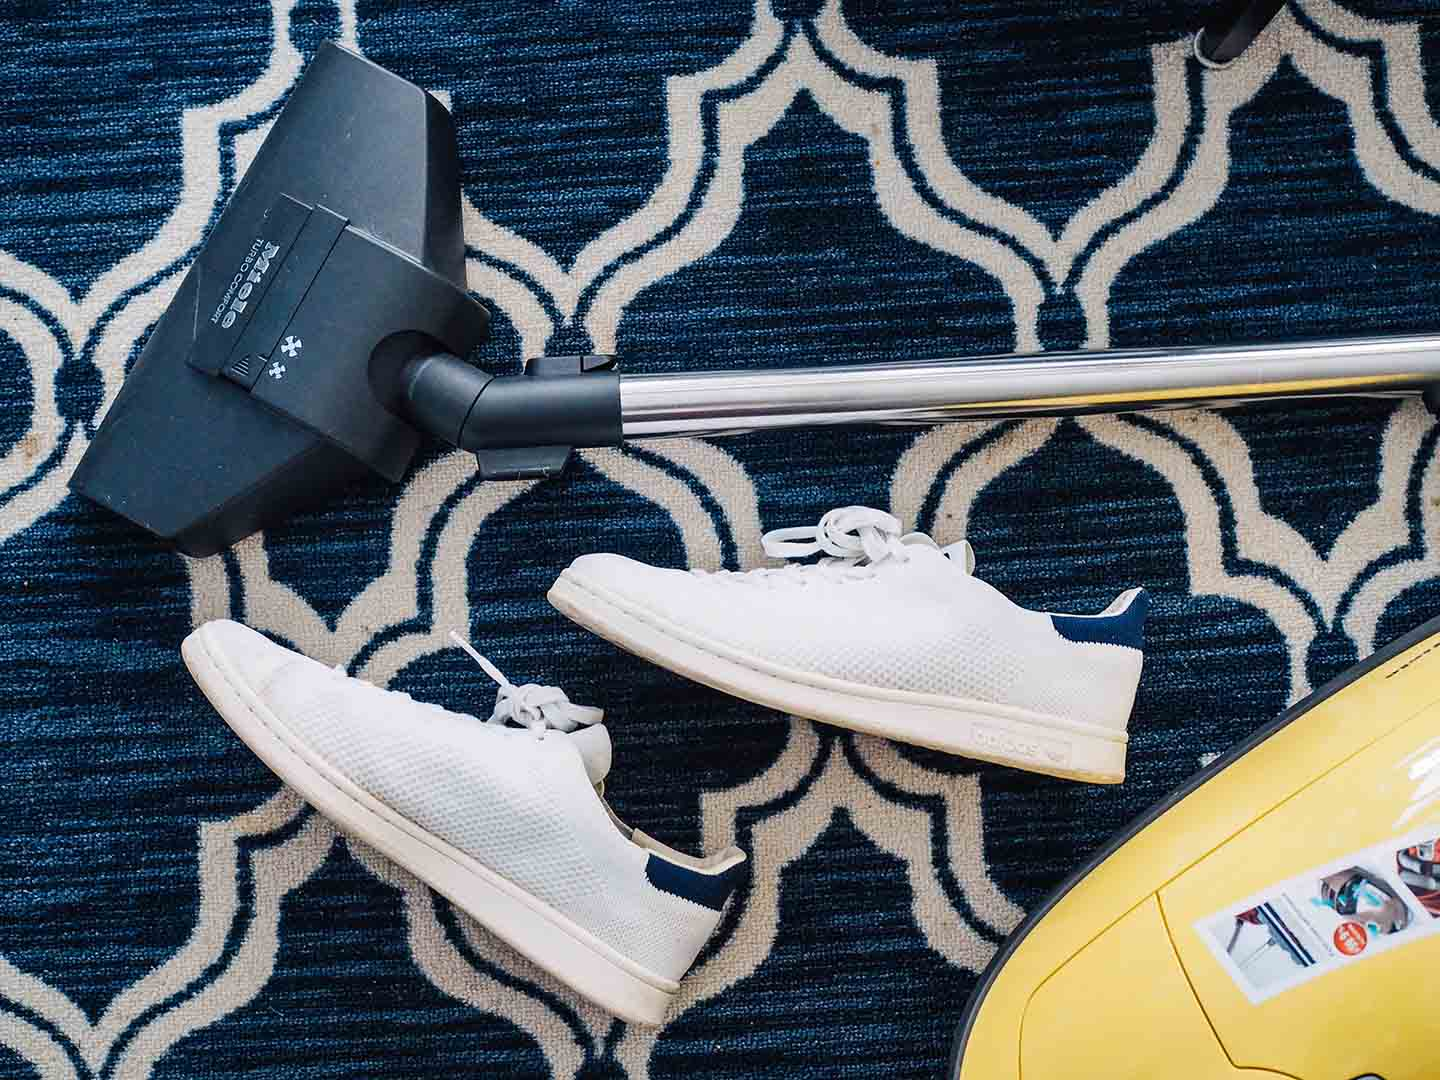 healthier home vacuum and shoes on blue carpet